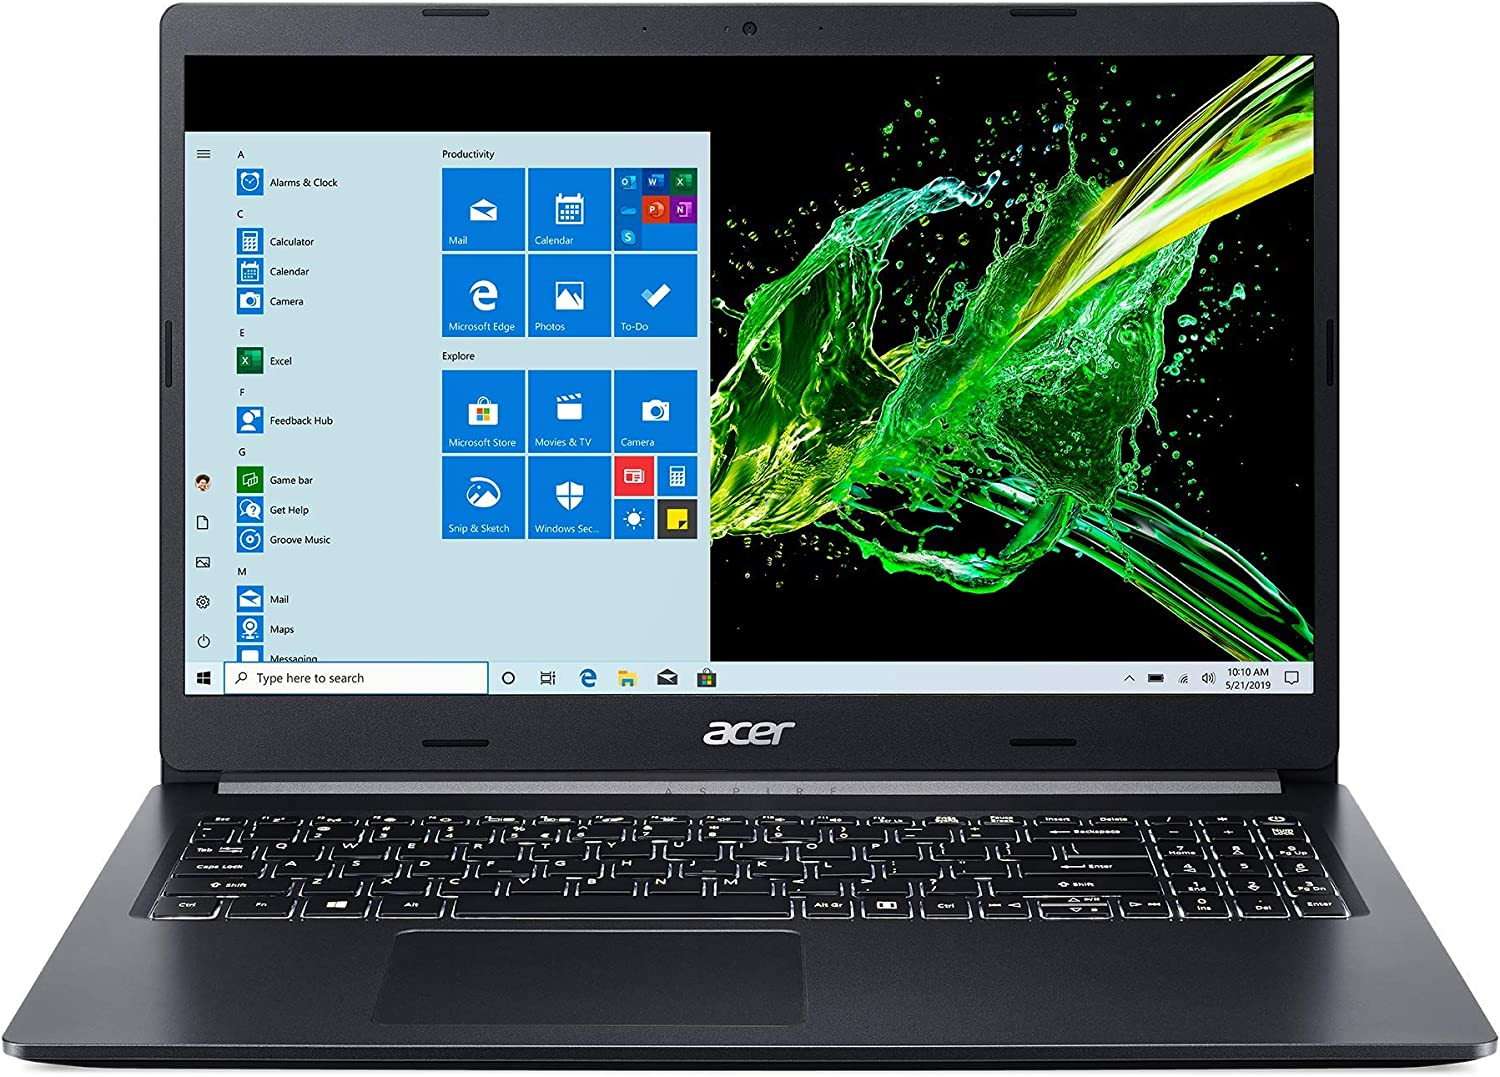 "Acer Aspire 5 A515-55T-53AP, 15.6"" HD Touch Display, 10th Gen Intel Core i5-1035G1, 8GB DDR4, 256GB NVMe SSD, WiFi 6, HD Webcam, Backlit Keyboard, Windows 10 Home"